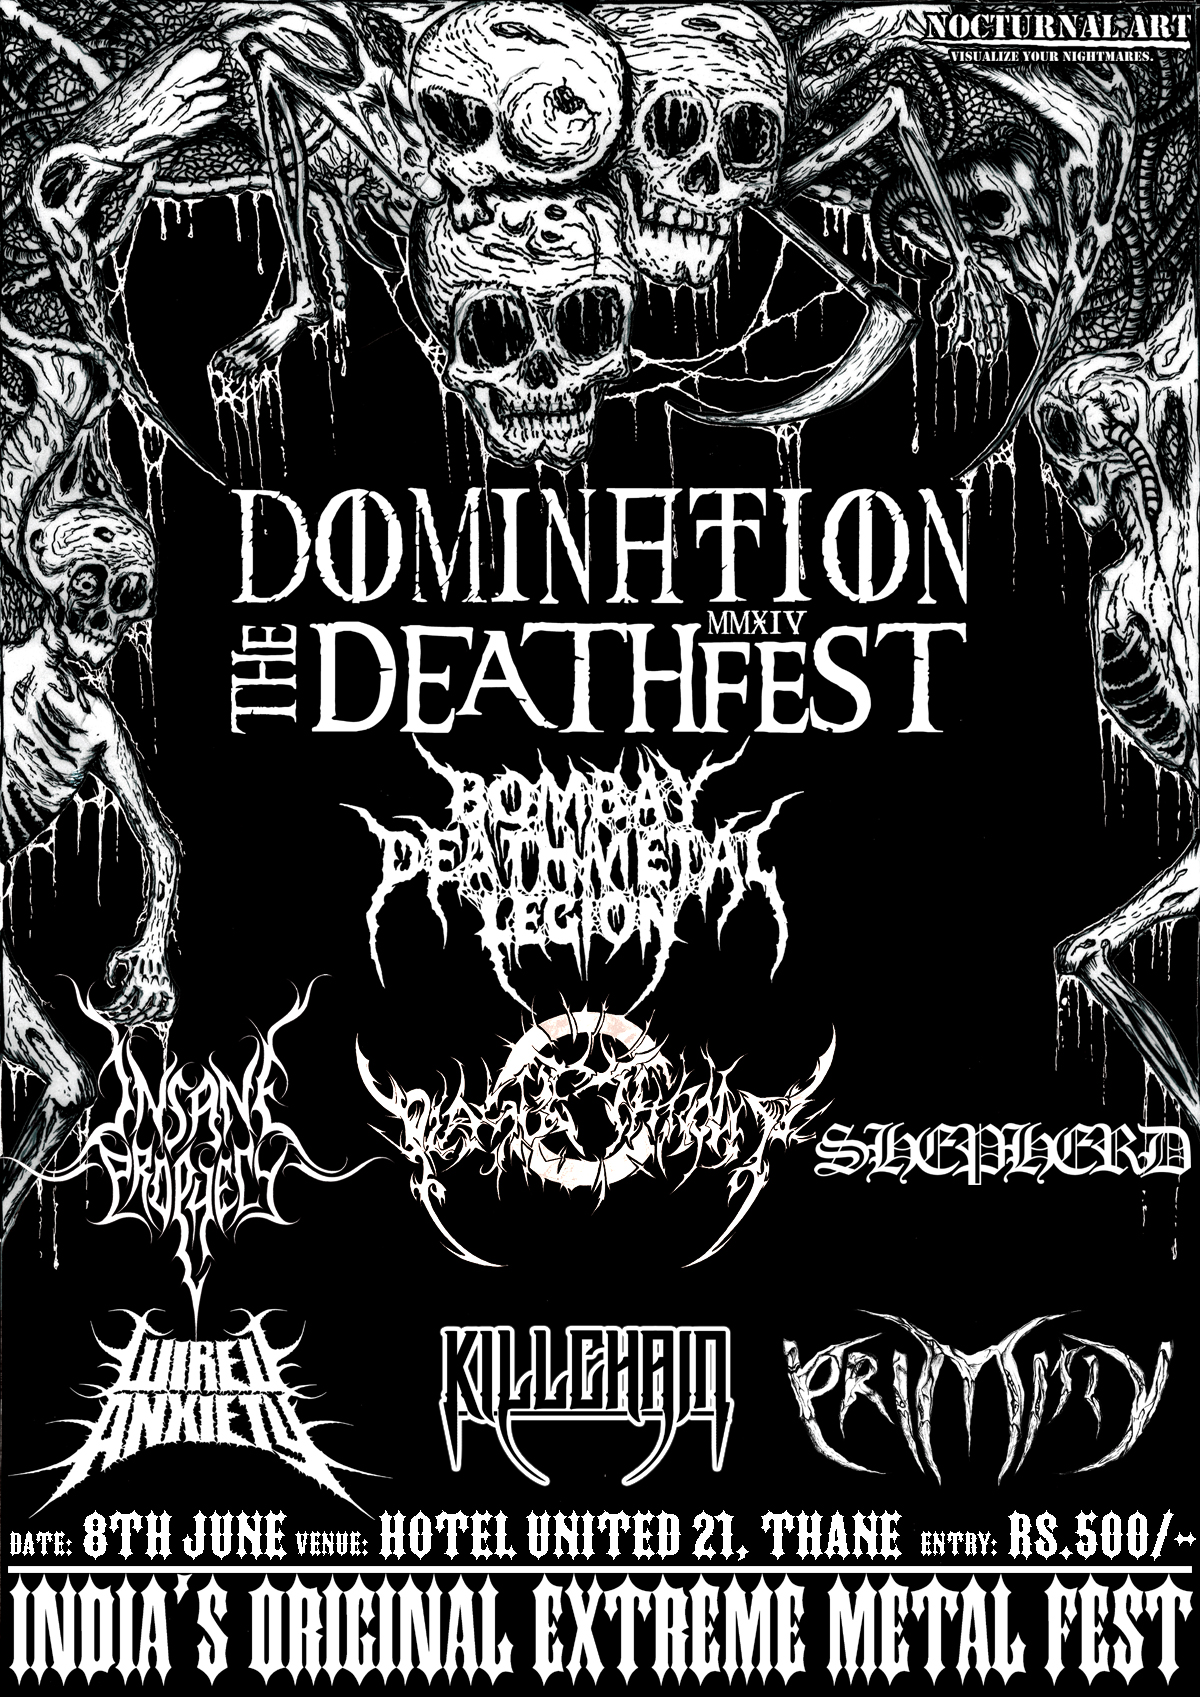 Domination: The Deathfest returns for its 6th edition, across two cities